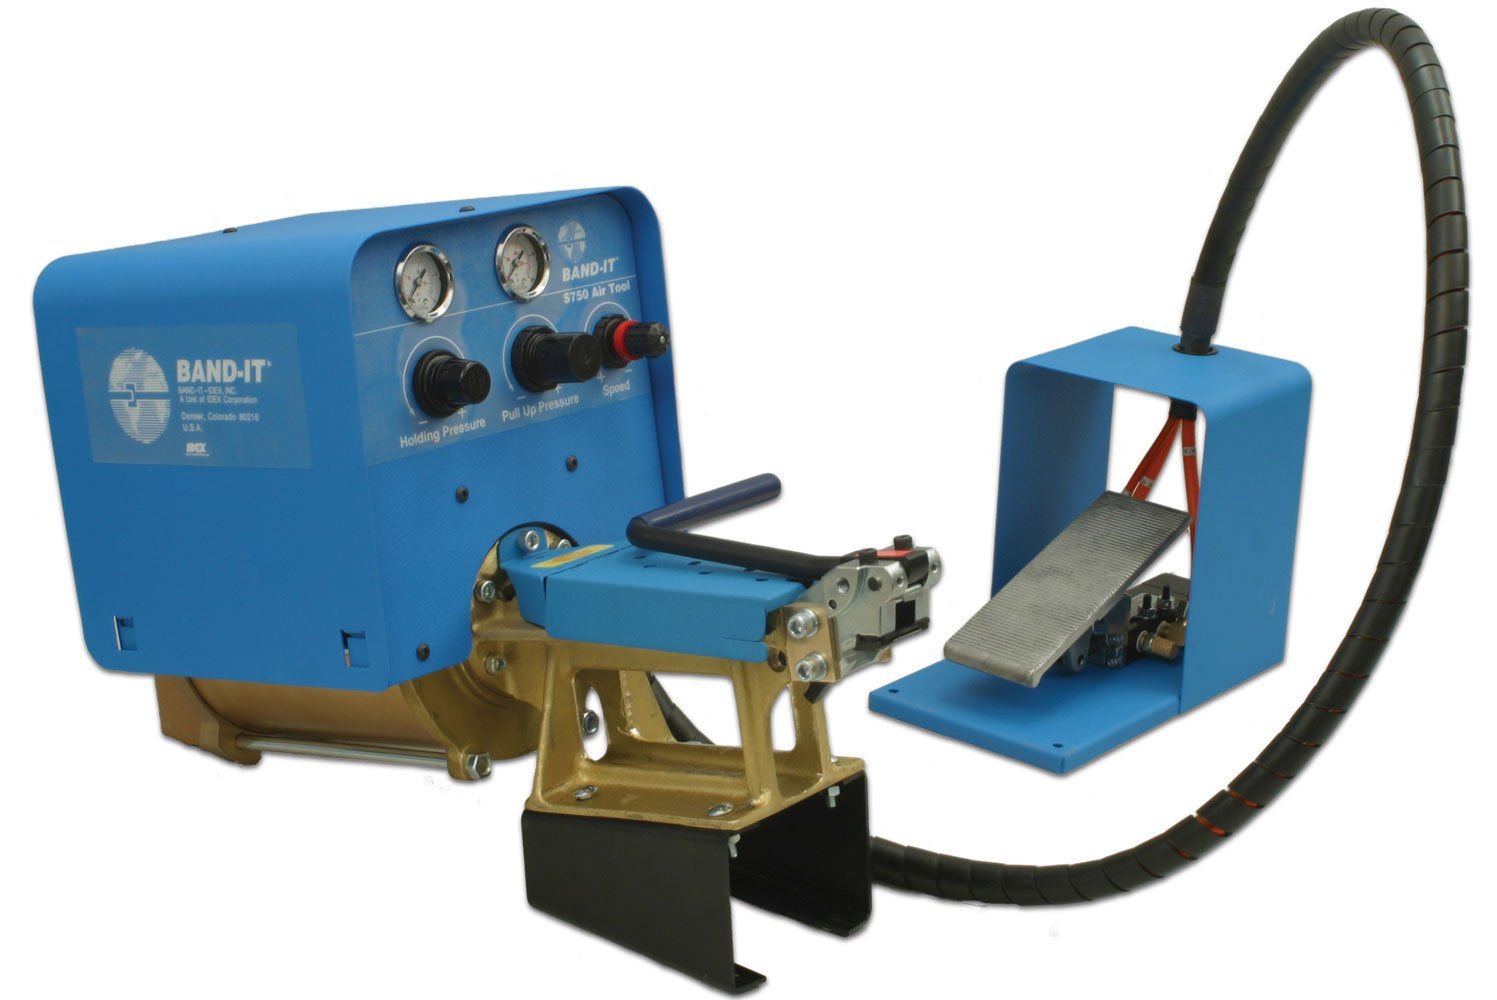 BAND-IT S75099 Air Tool With Manual Cut Off And Foot Control Feature, For Use With BAND-IT Jr. Smooth ID Clamps